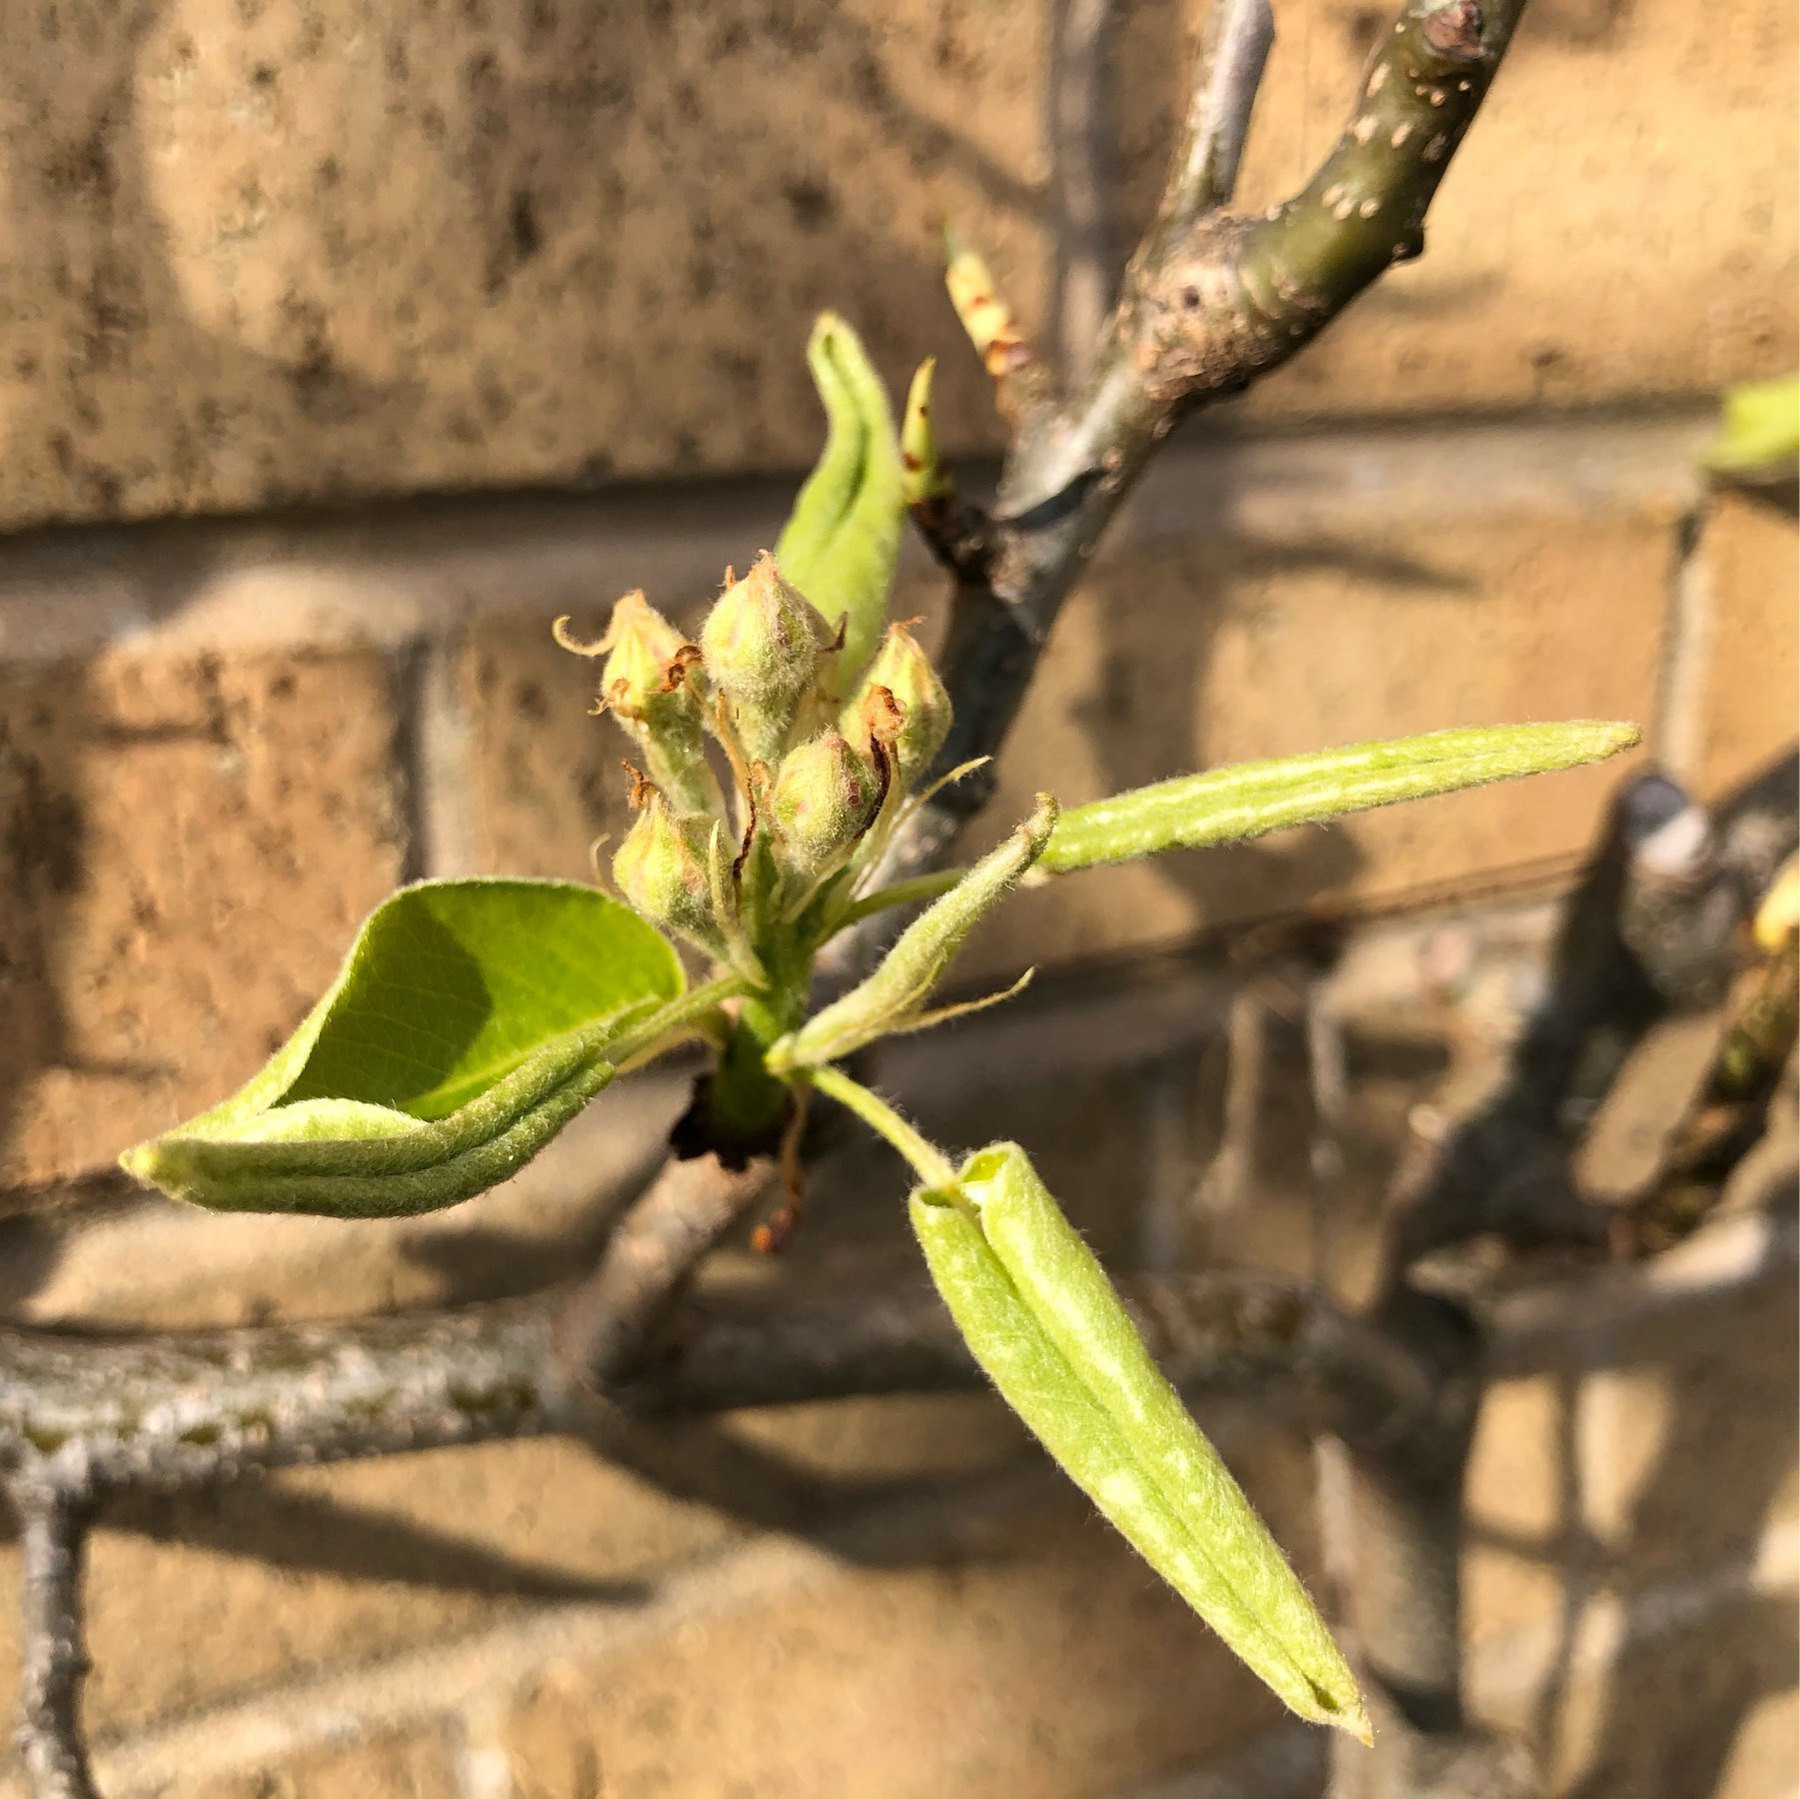 An espalier fruit tree coming into bloom.